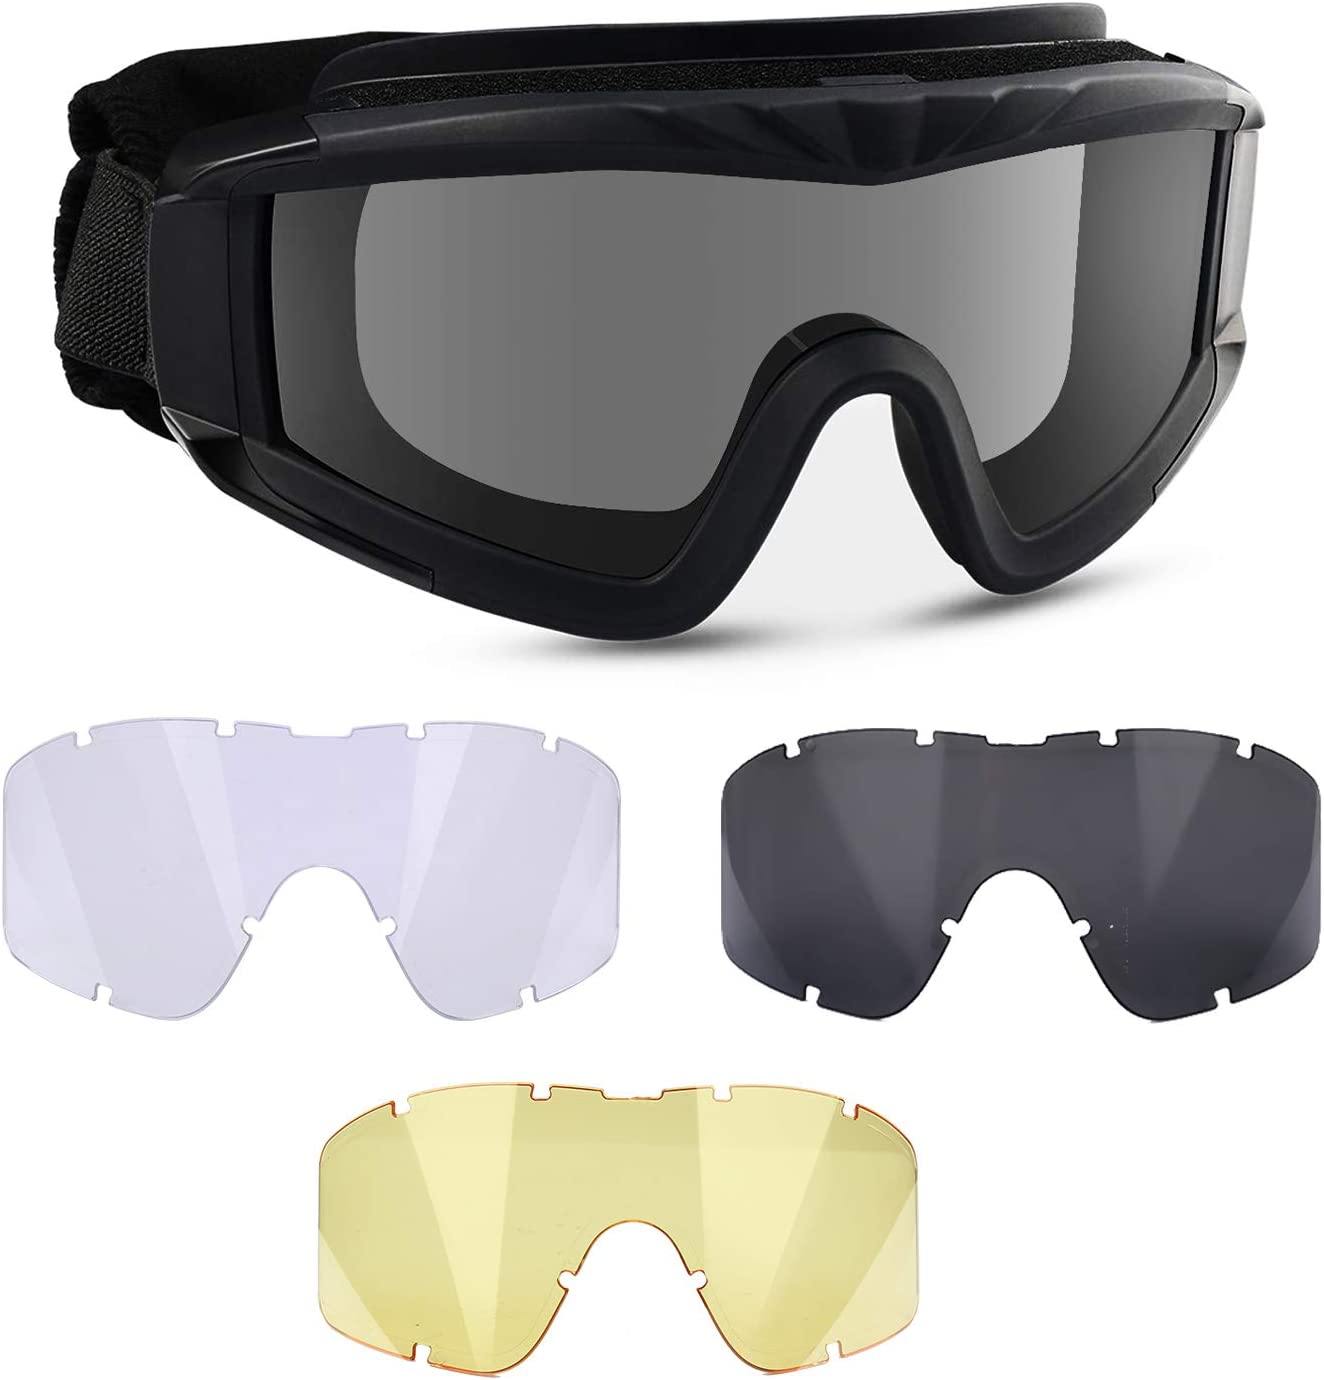 Valken Echo Tactical Goggles Safety Glasses Cycling Airsoft Paintball UV Protect